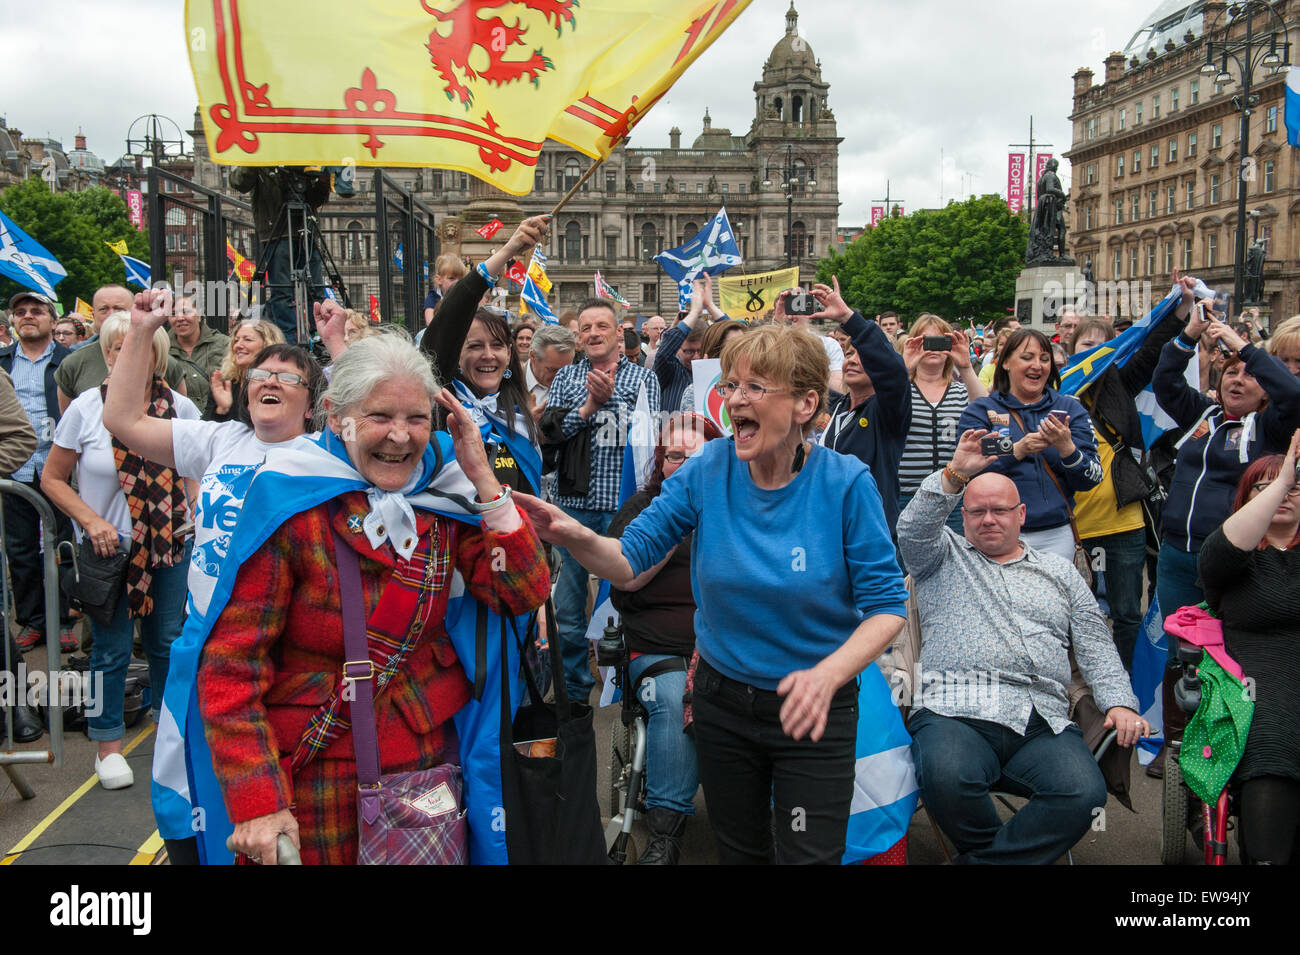 Glasgow, Scotland. 20th June, 2015. Anti-austerity demonstation held in Glasgow to coincide with The People's - Stock Image